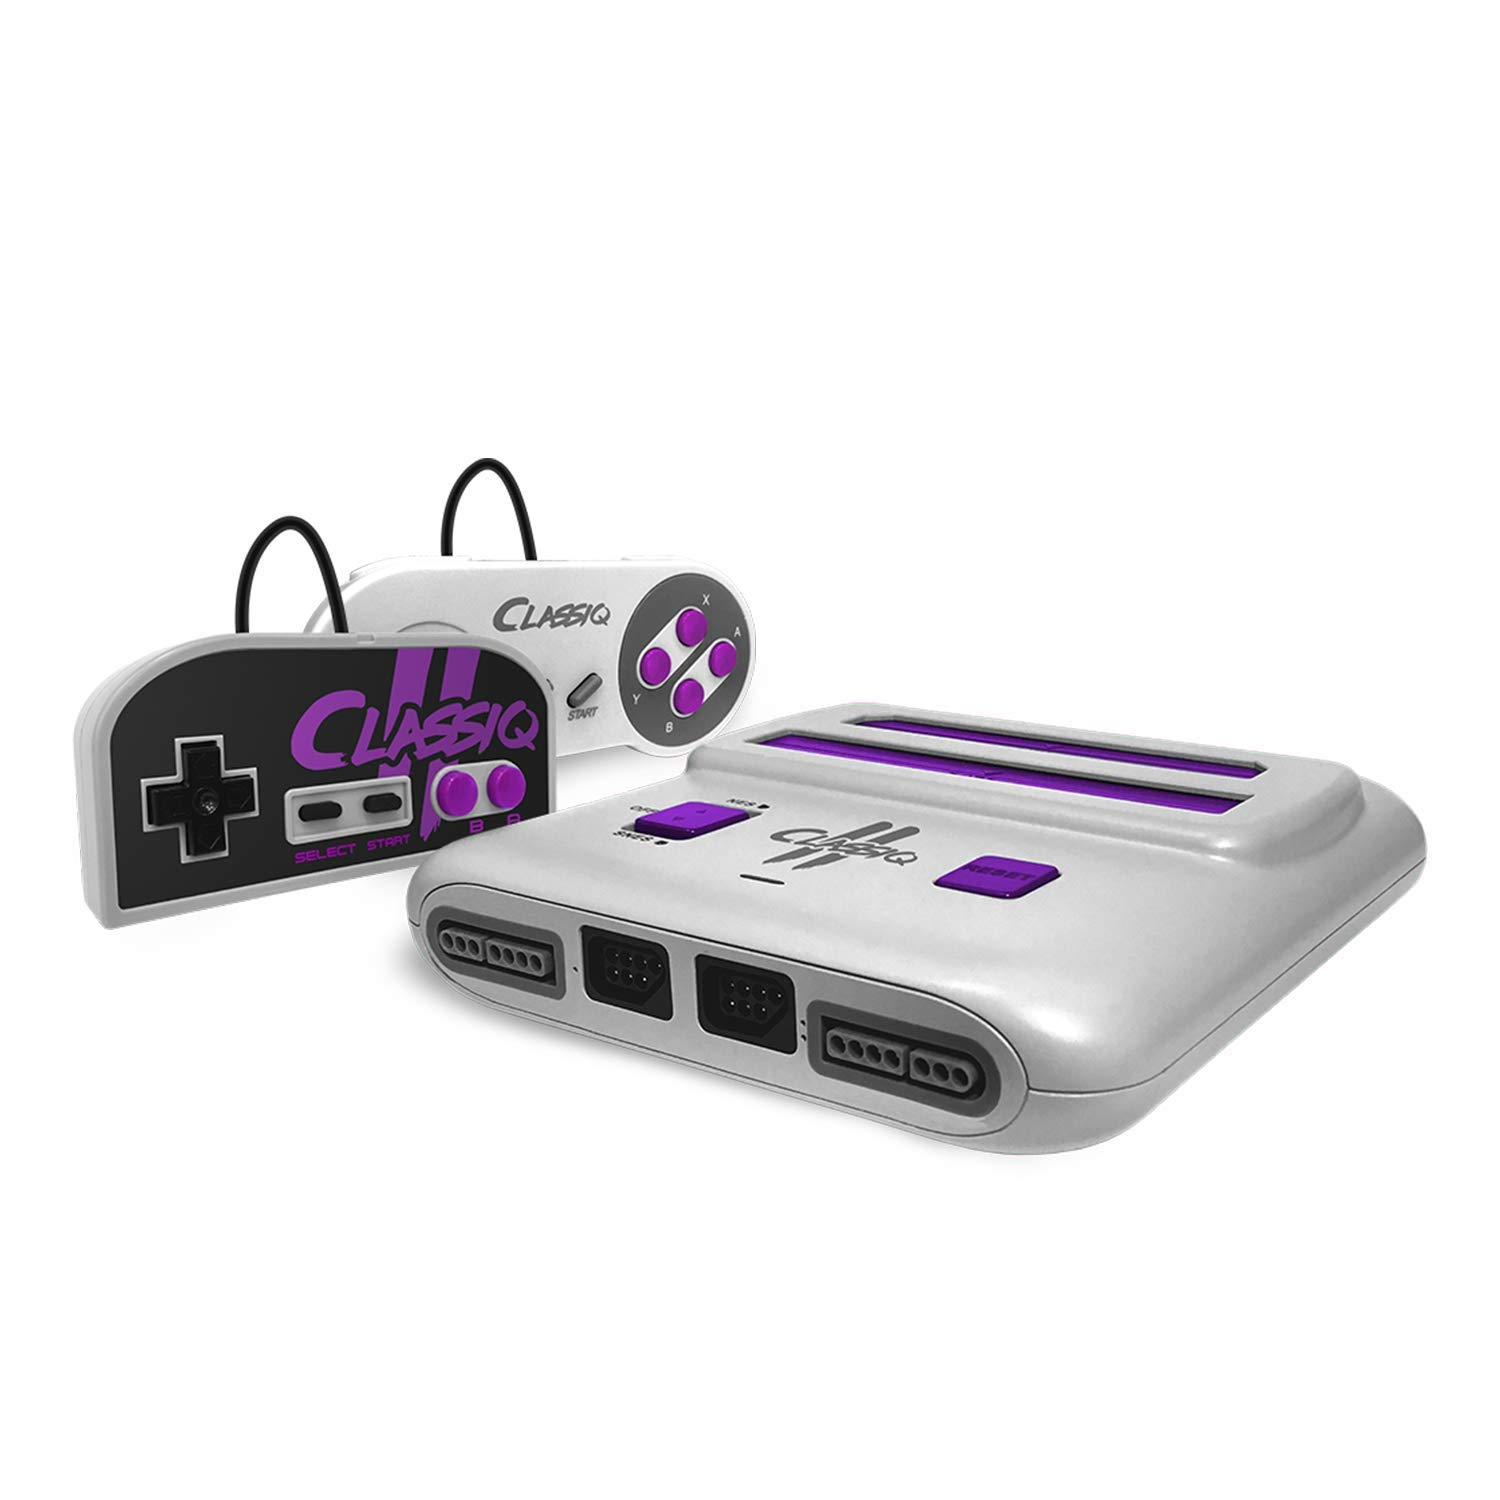 Old Skool Classiq 2 AV Version Twin Video Game System, Grey/Purple Compatible with SNES/NES Nintendo and Super Nintendo cartridges: Video Games